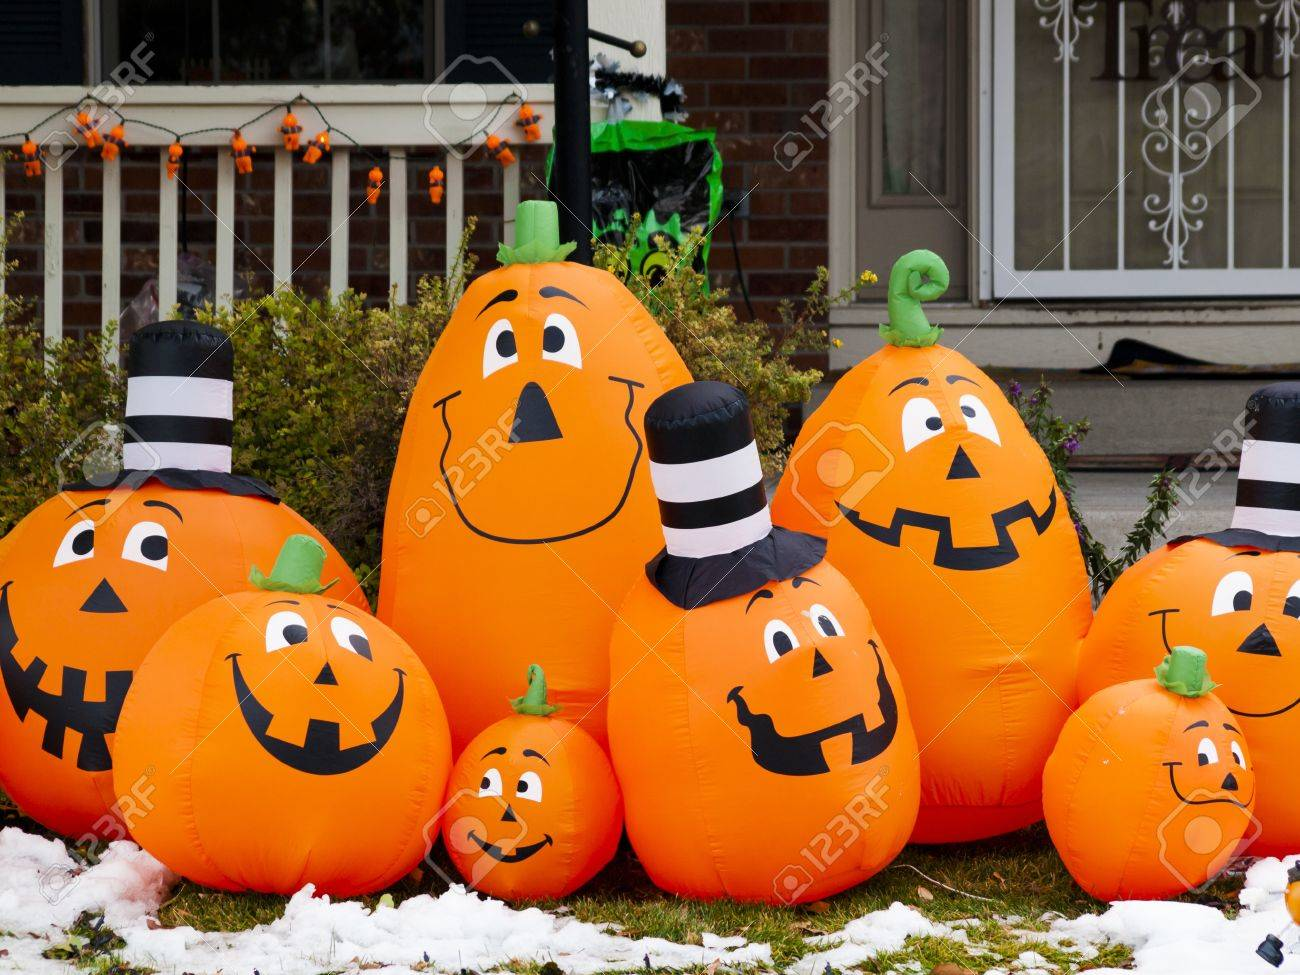 Halloween yard decorations - Halloween Decorations In The Front Yard Of A House On Halloween Stock Photo 15982376